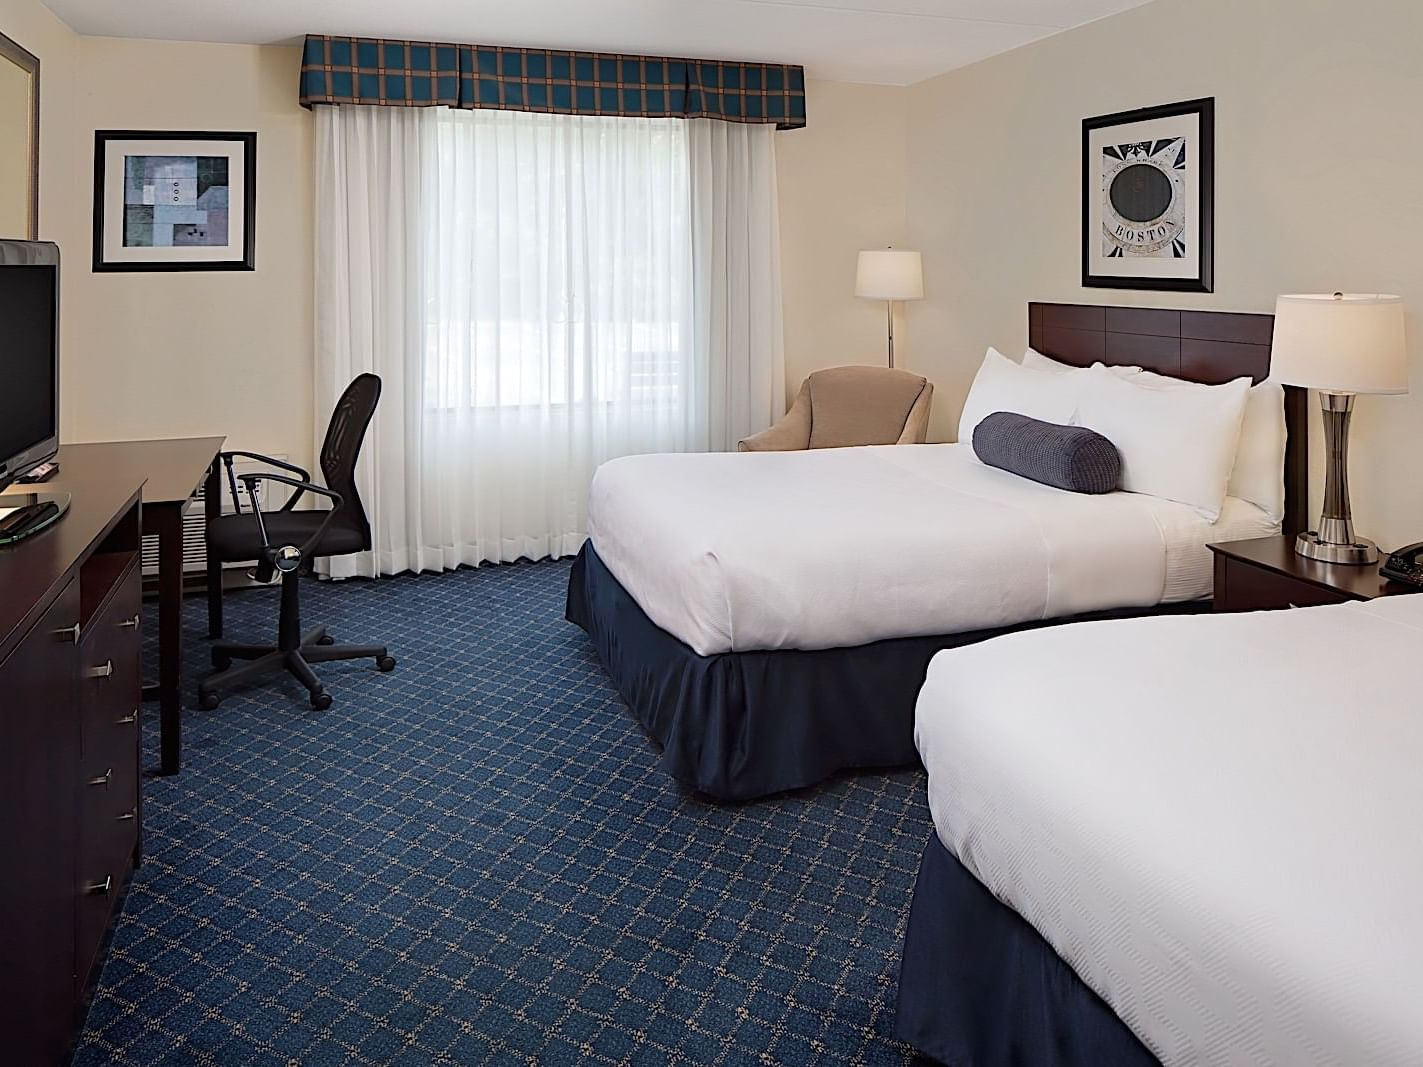 two beds in hotel room with blue carpet and window